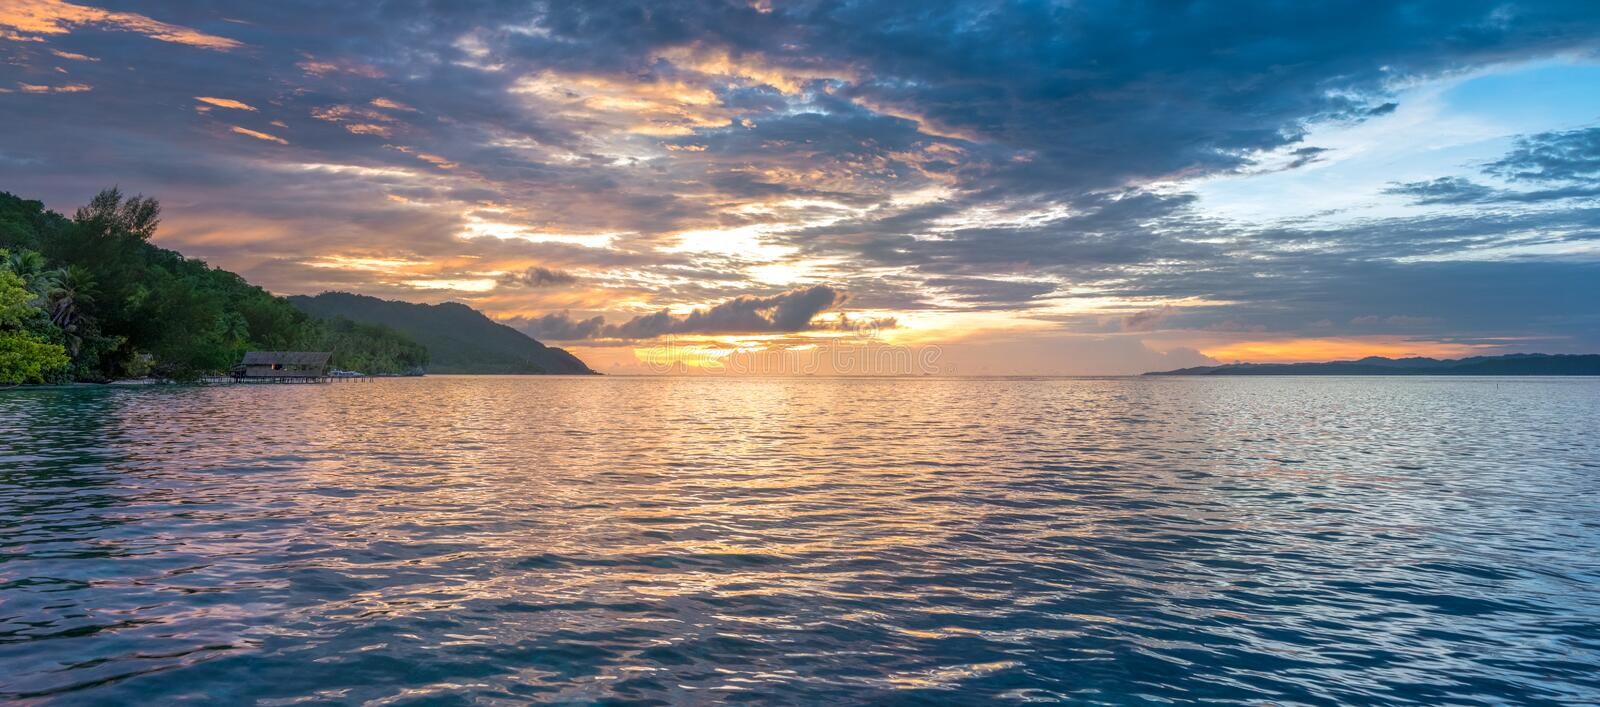 Sunset Sky over Kri and Monsuar, West Papuan, Raja Ampat, Indonesia. Banner stock photos